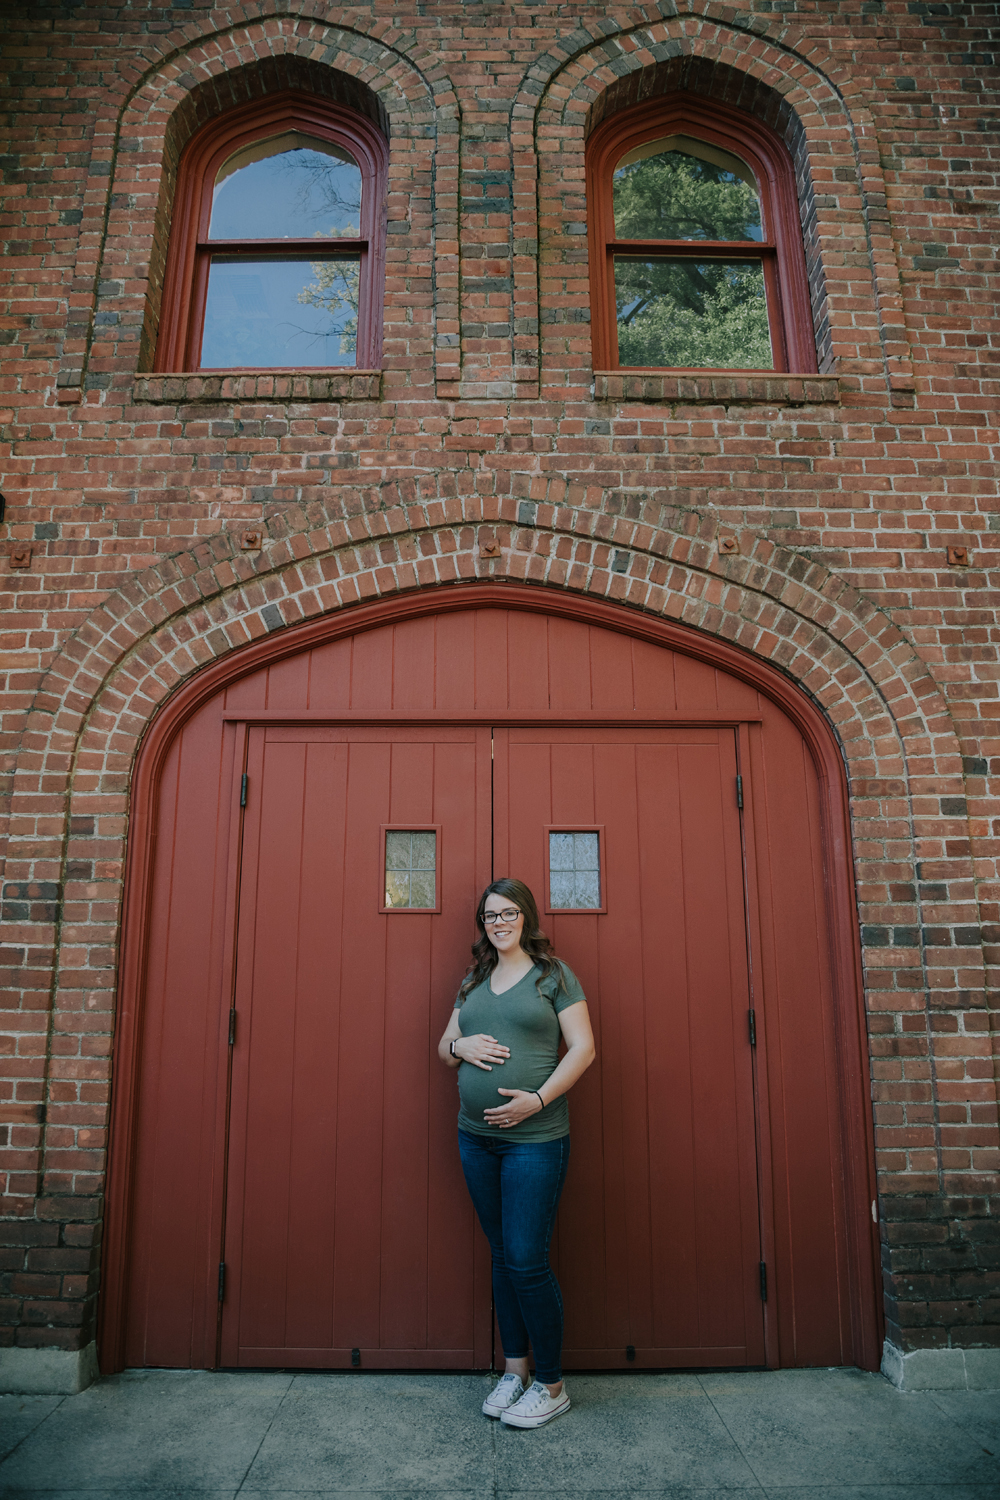 Downtown-Chico-and-Upper-Bidwell-Park-Maternity-photos22.jpg